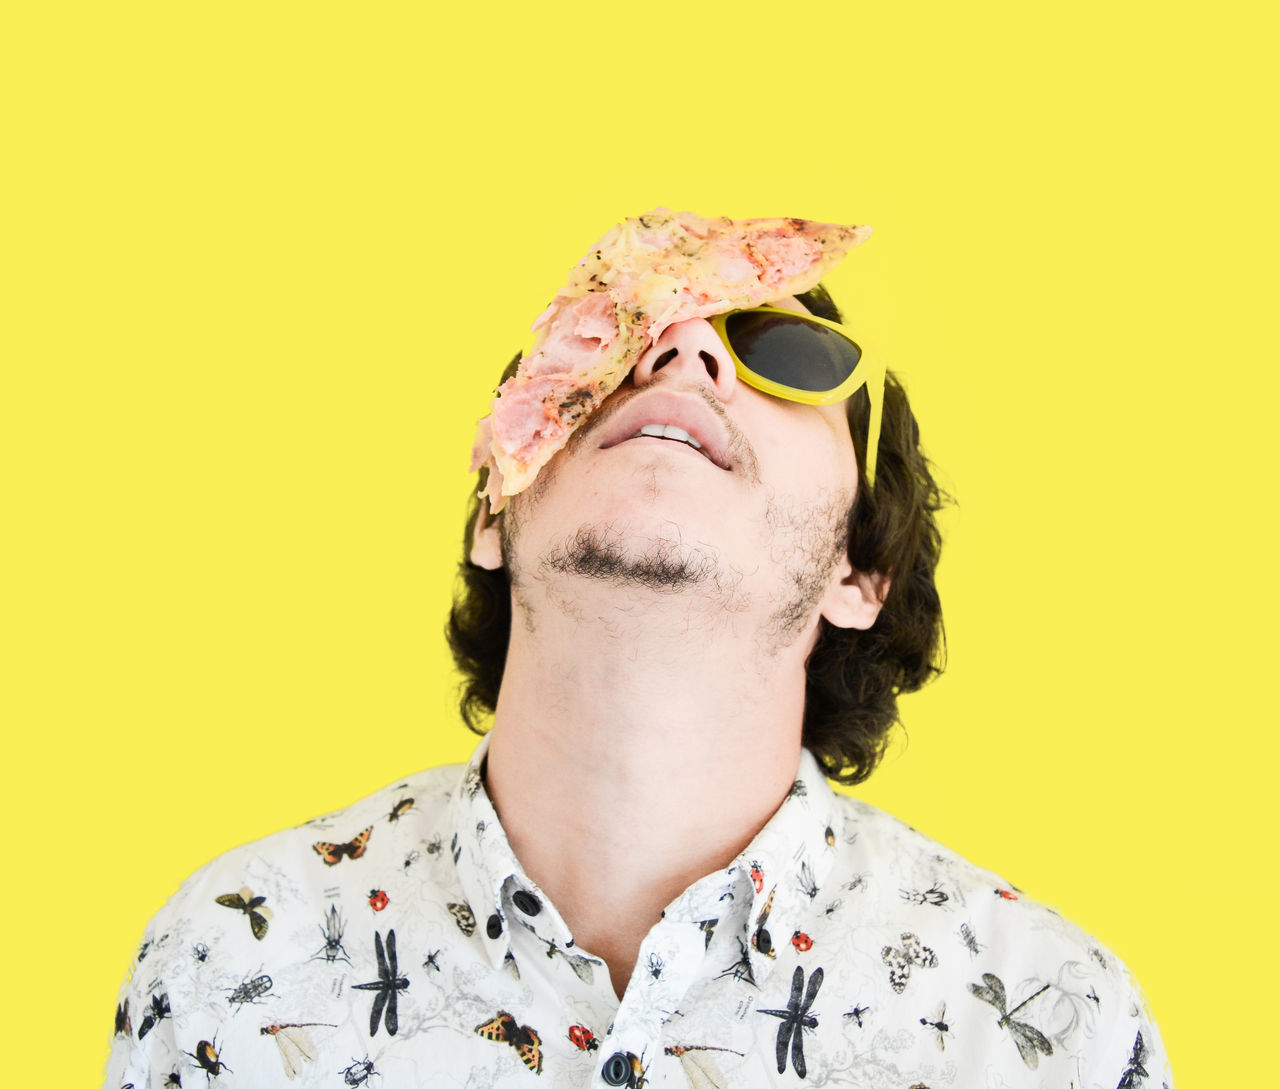 Close-up portrait of man with pizza on face